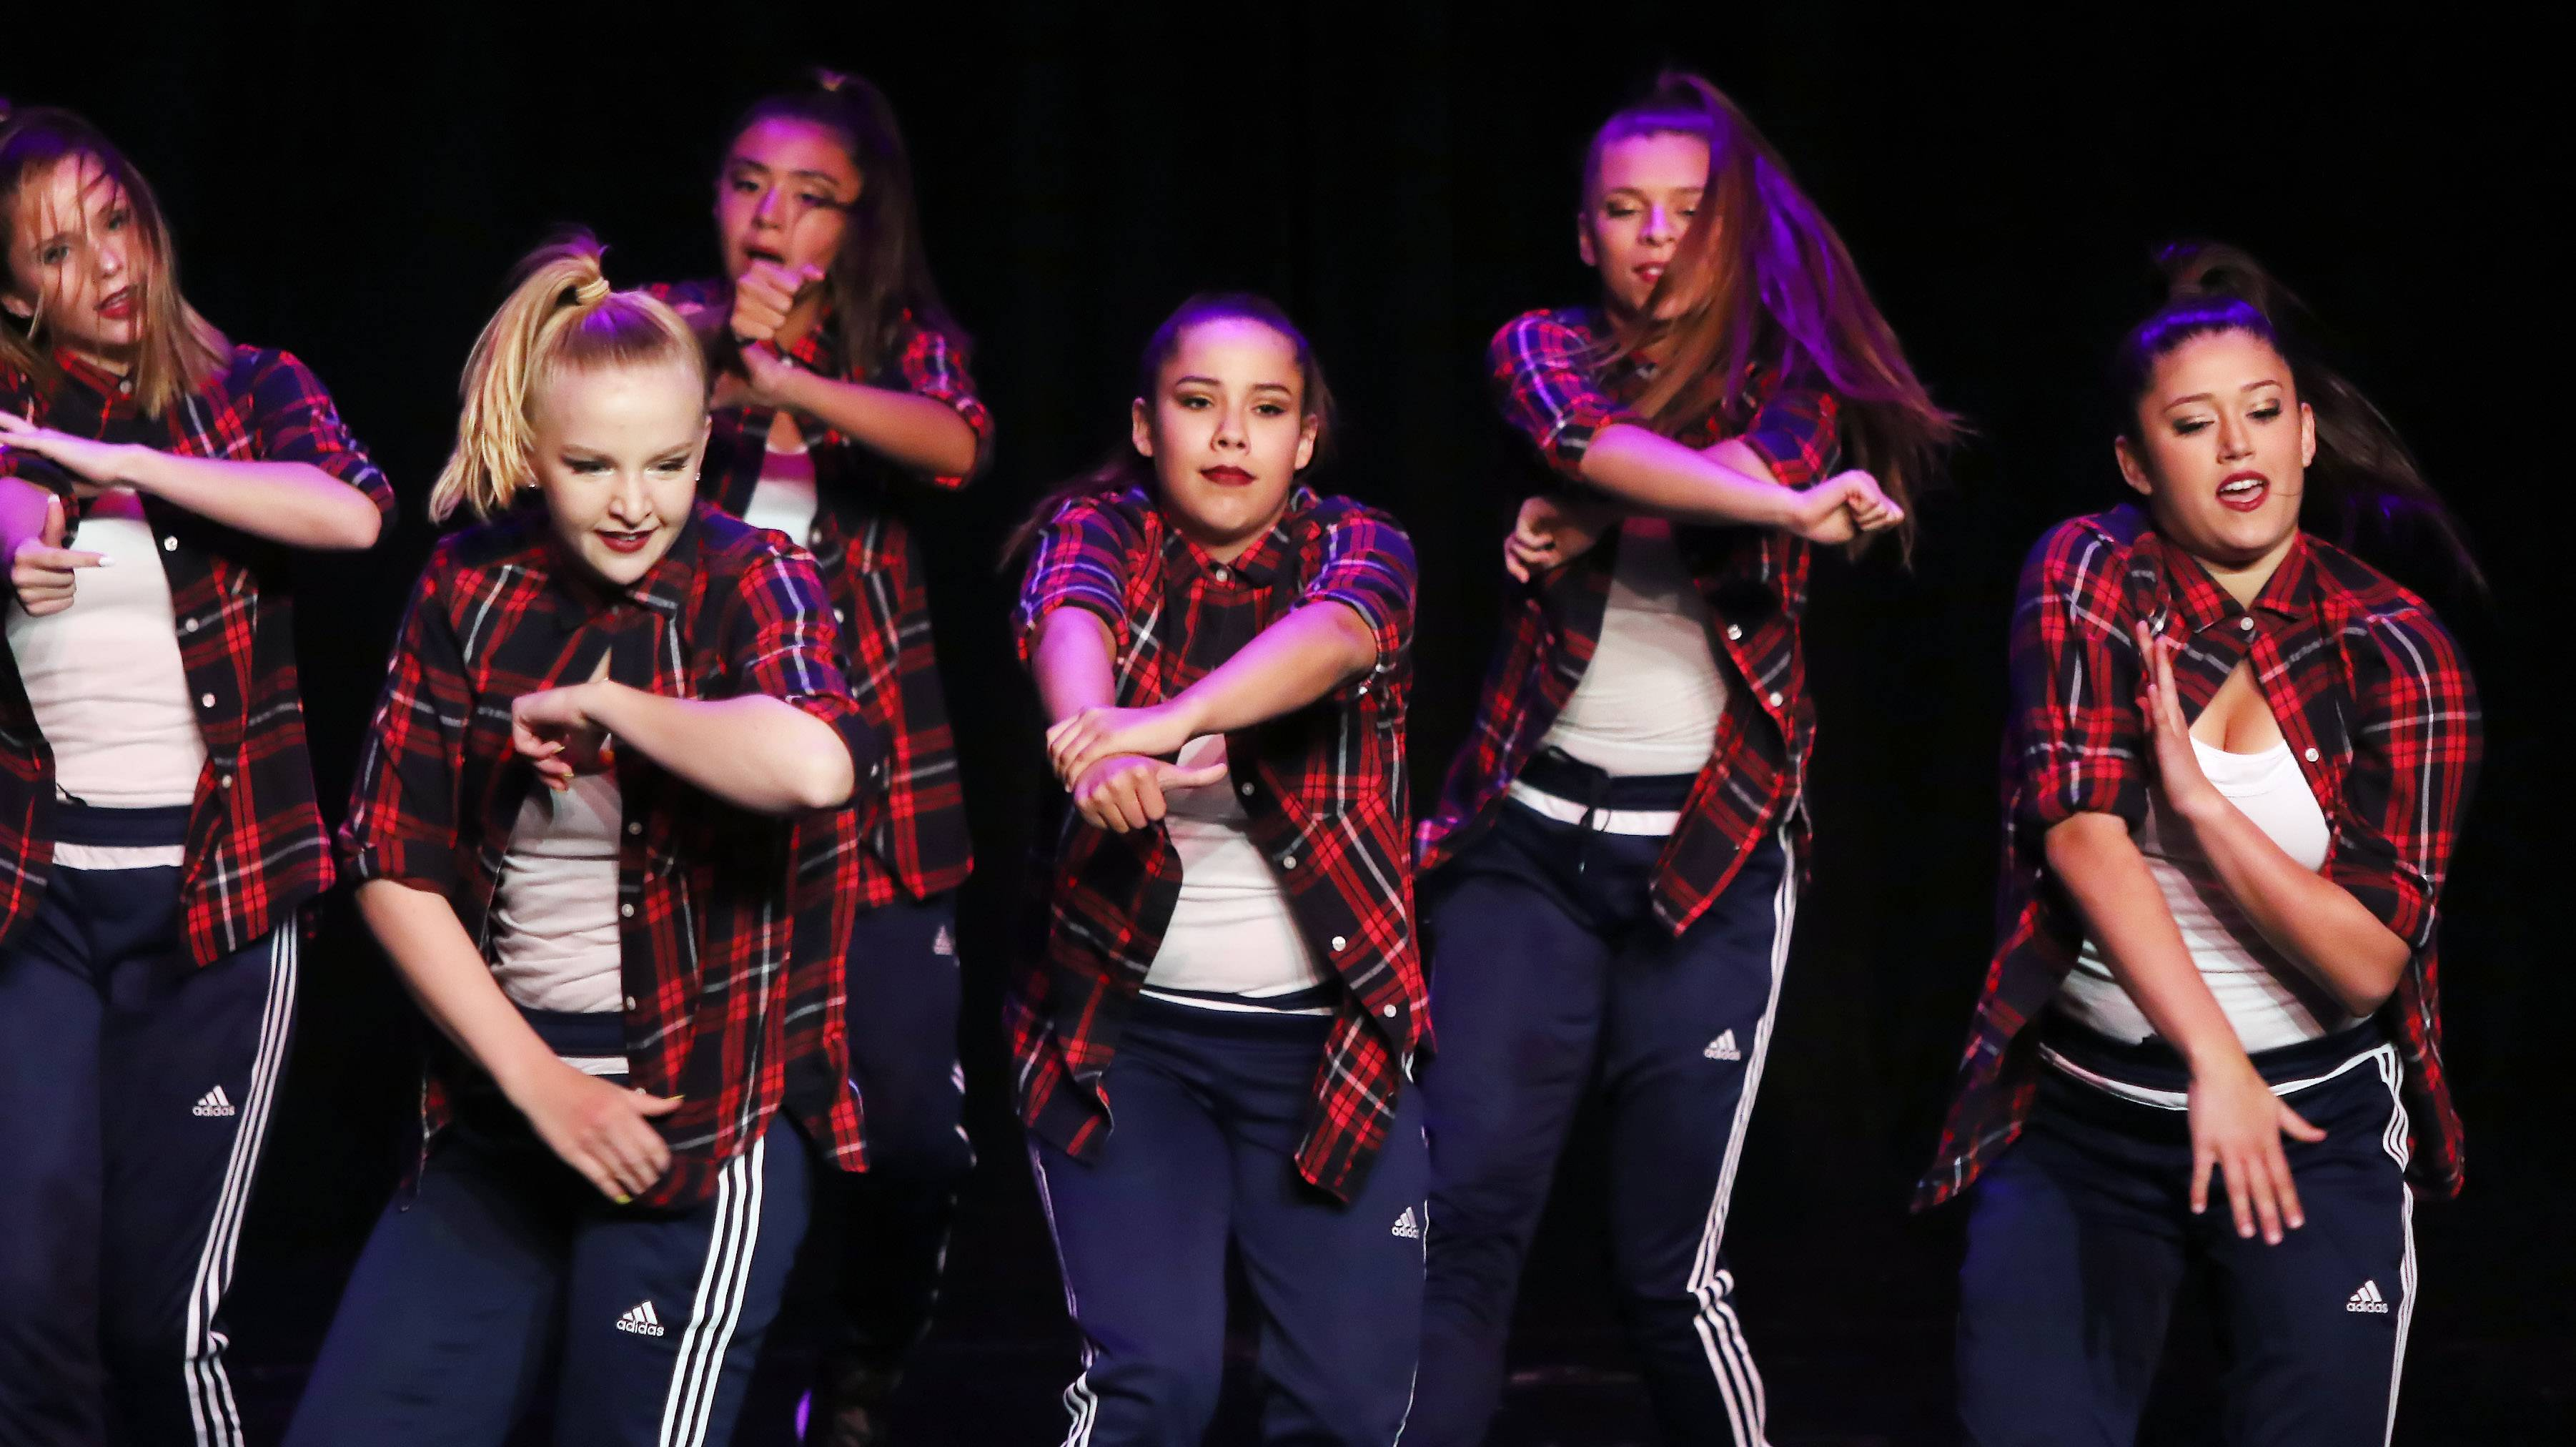 Gilbert R. Boucher II/gboucher@dailyherald.comThe Dynasty, a group from Naperville, dances during the Suburban Chicago's Got Talent competition Sunday at Prairie Center for the Arts in Schaumburg. The winners will be announced at the Taste of Arlington Heights on Saturday, Aug. 5.